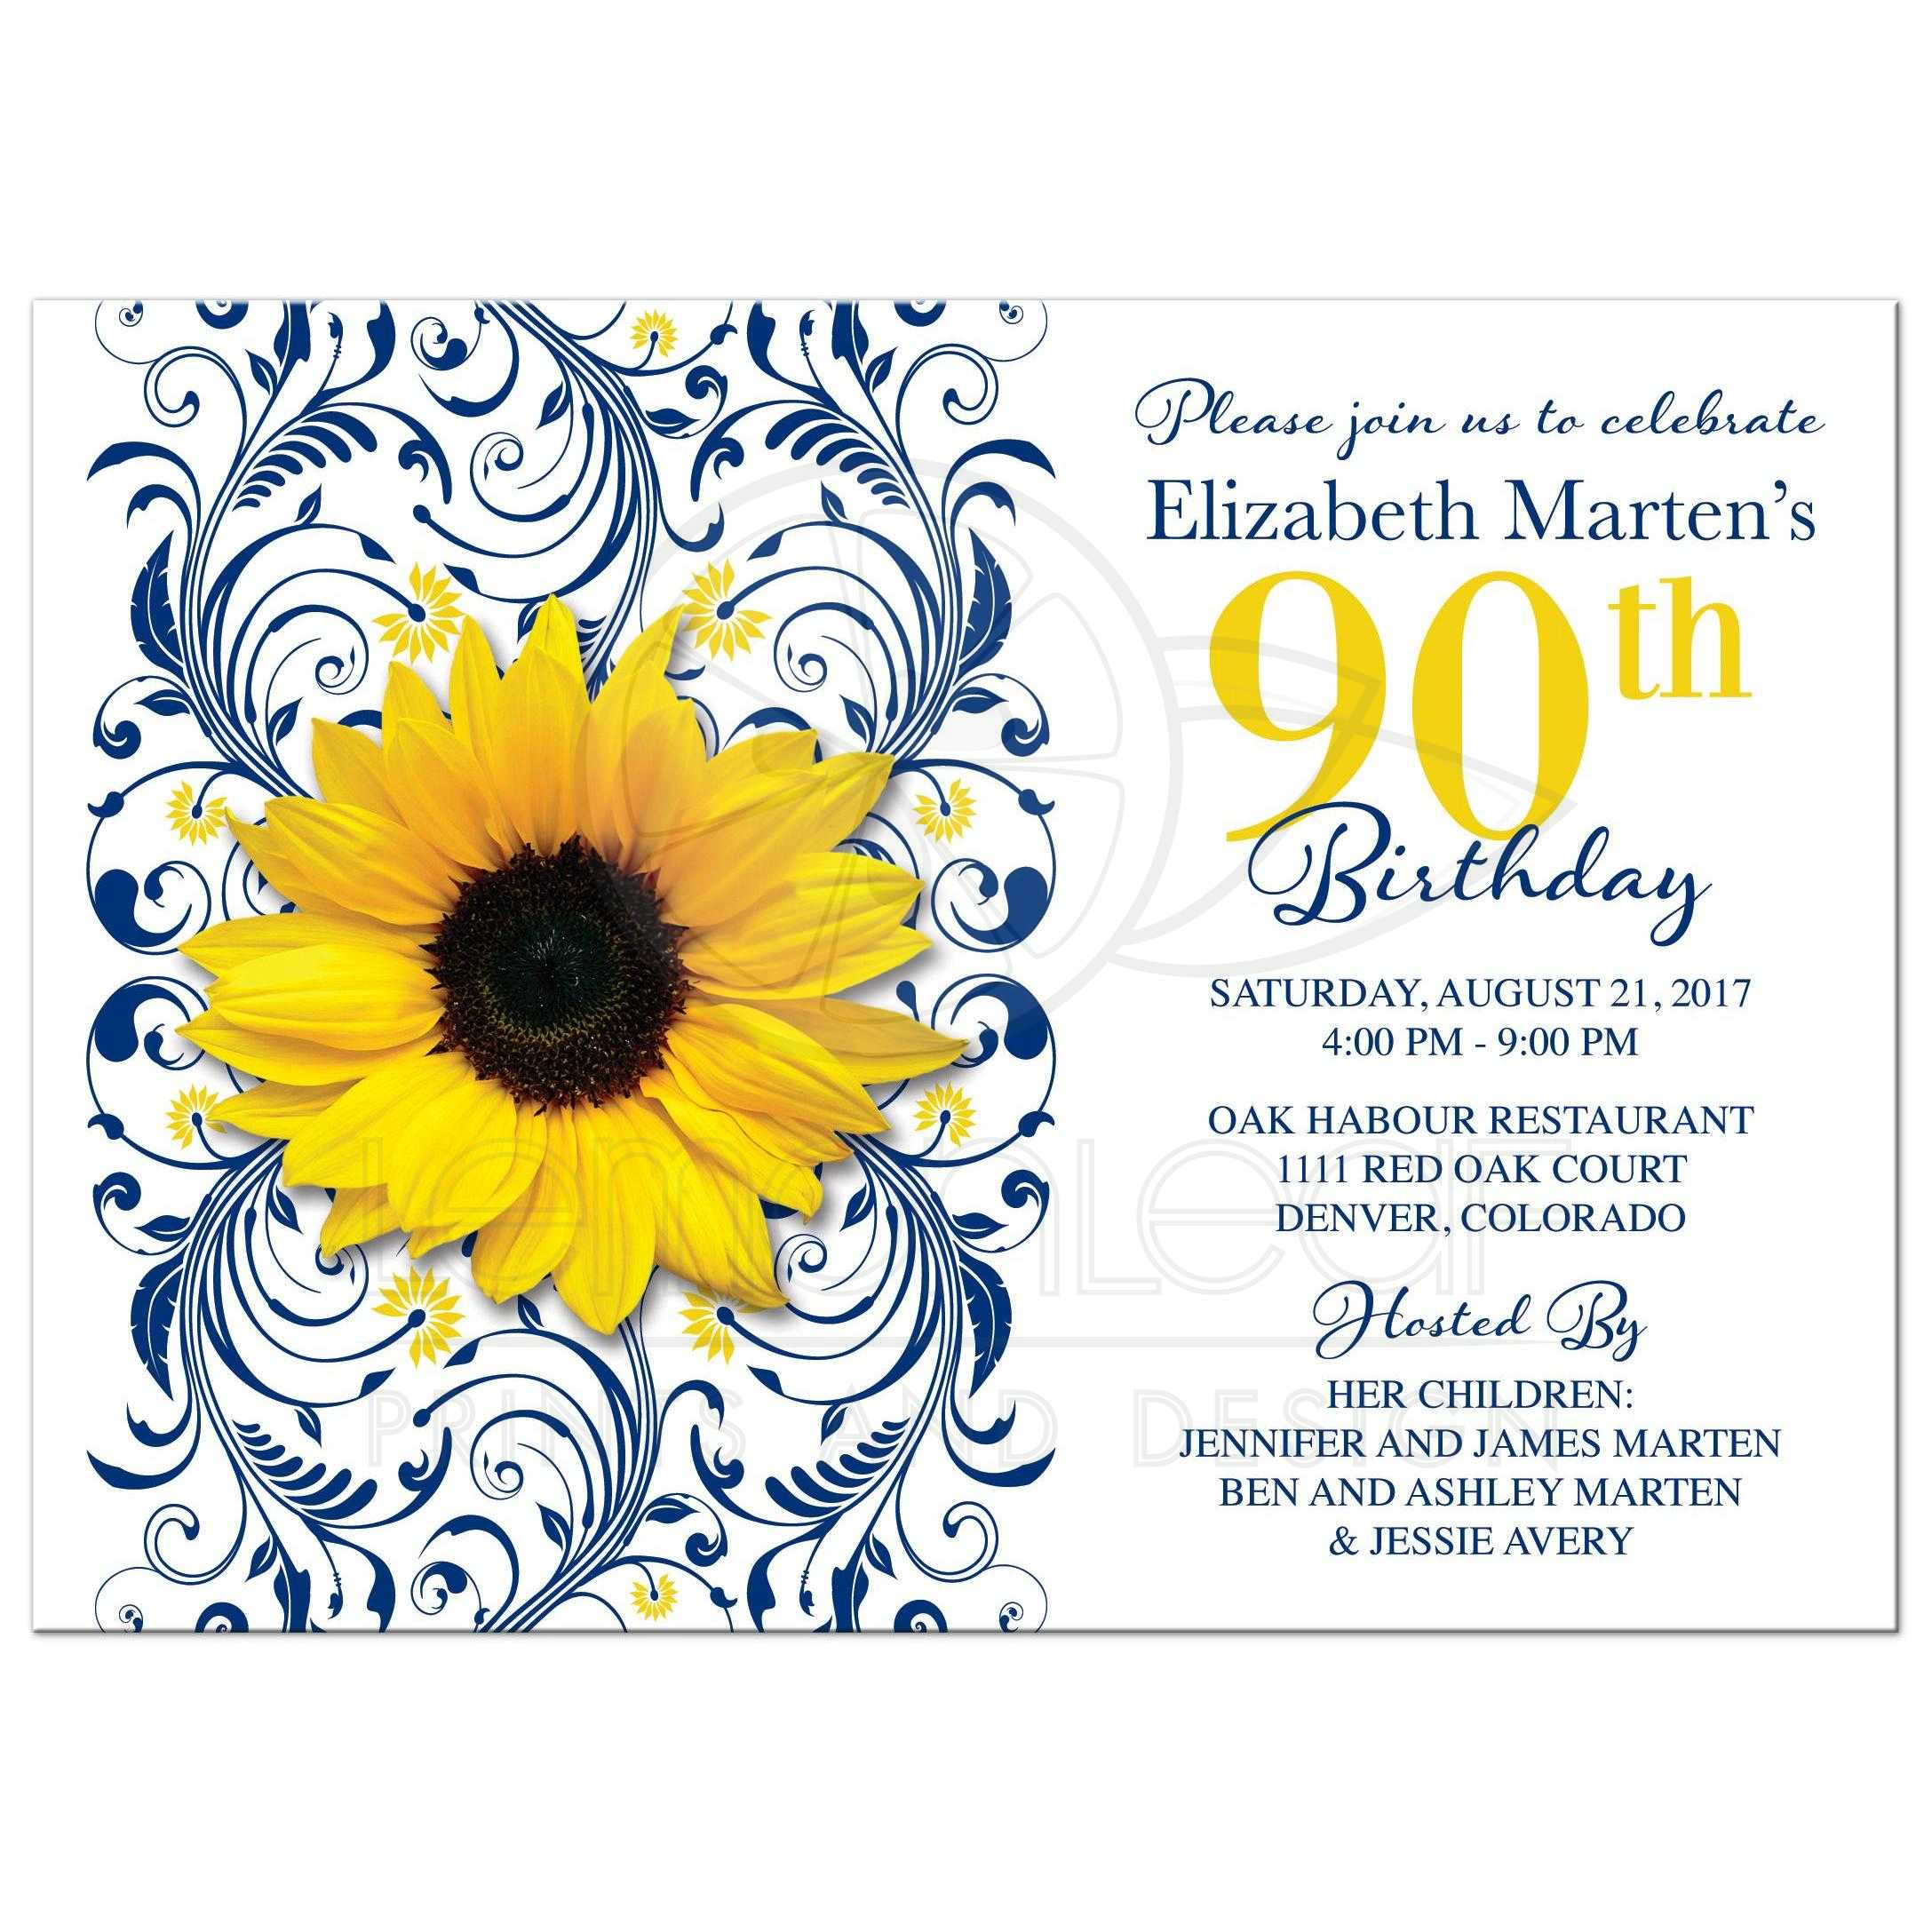 Sunflower 90th birthday invitation navy blue floral – 90th Birthday Invitation Cards